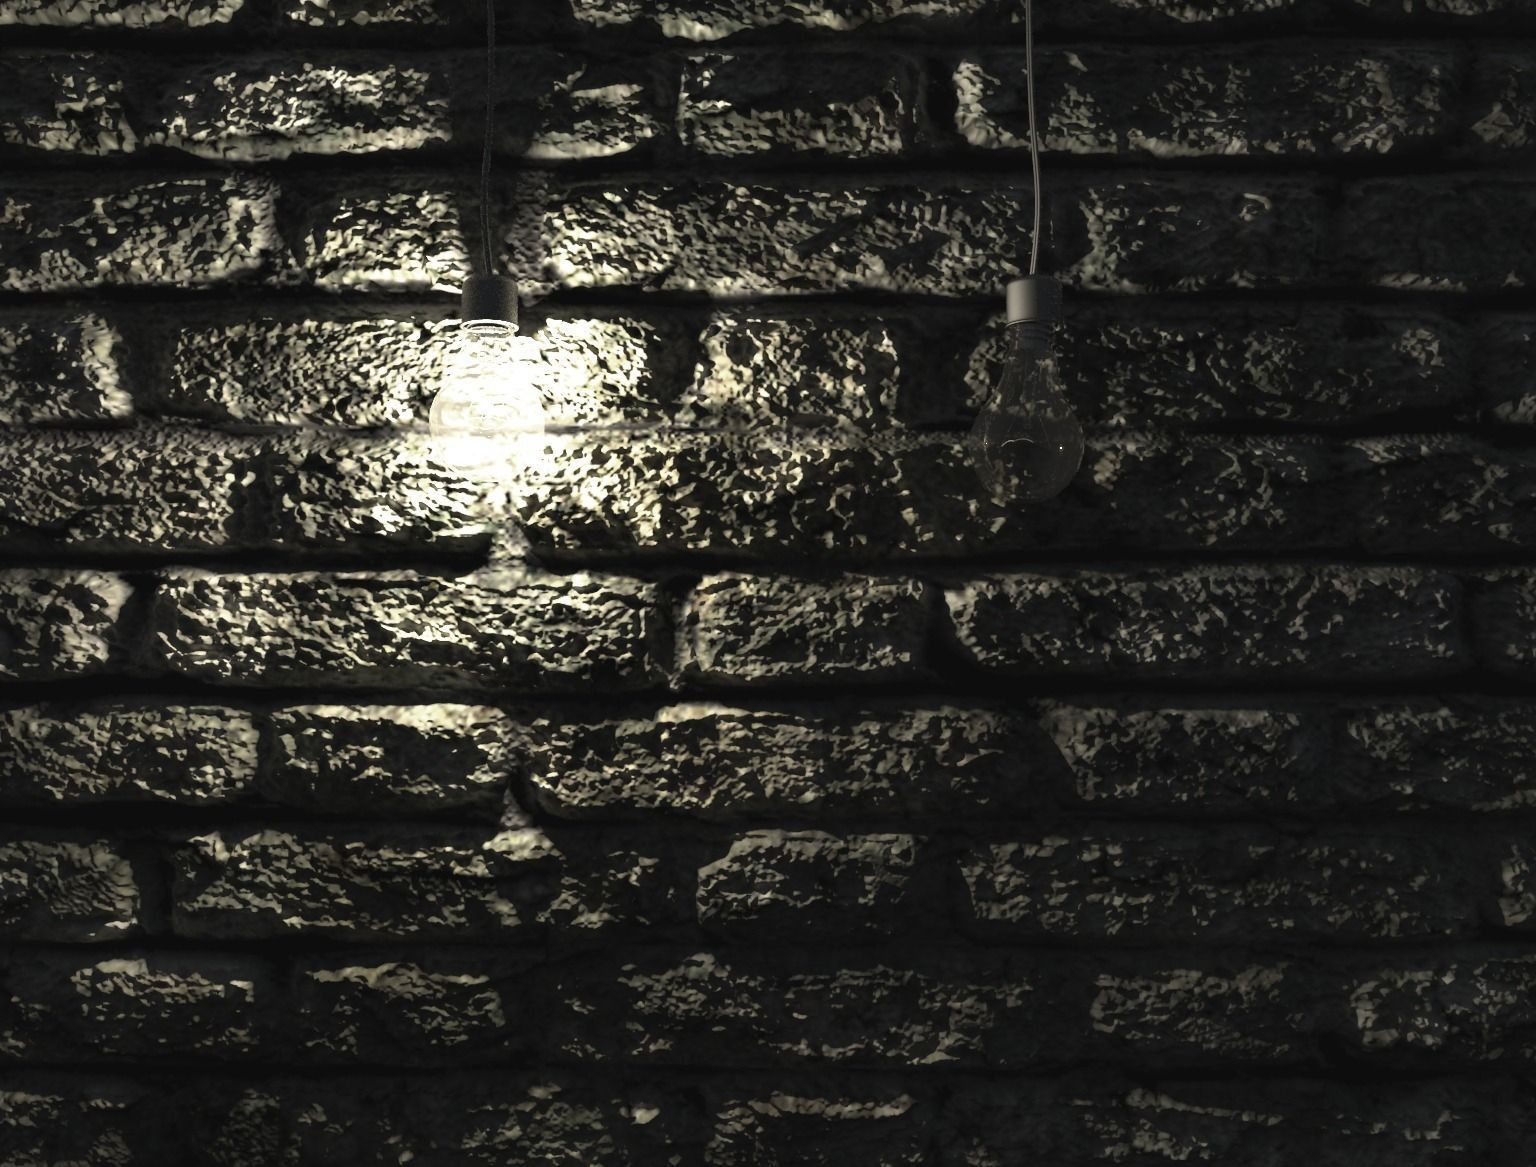 Brick Wall Light: ... light bulb on brick wall 3d model max 3 ...,Lighting